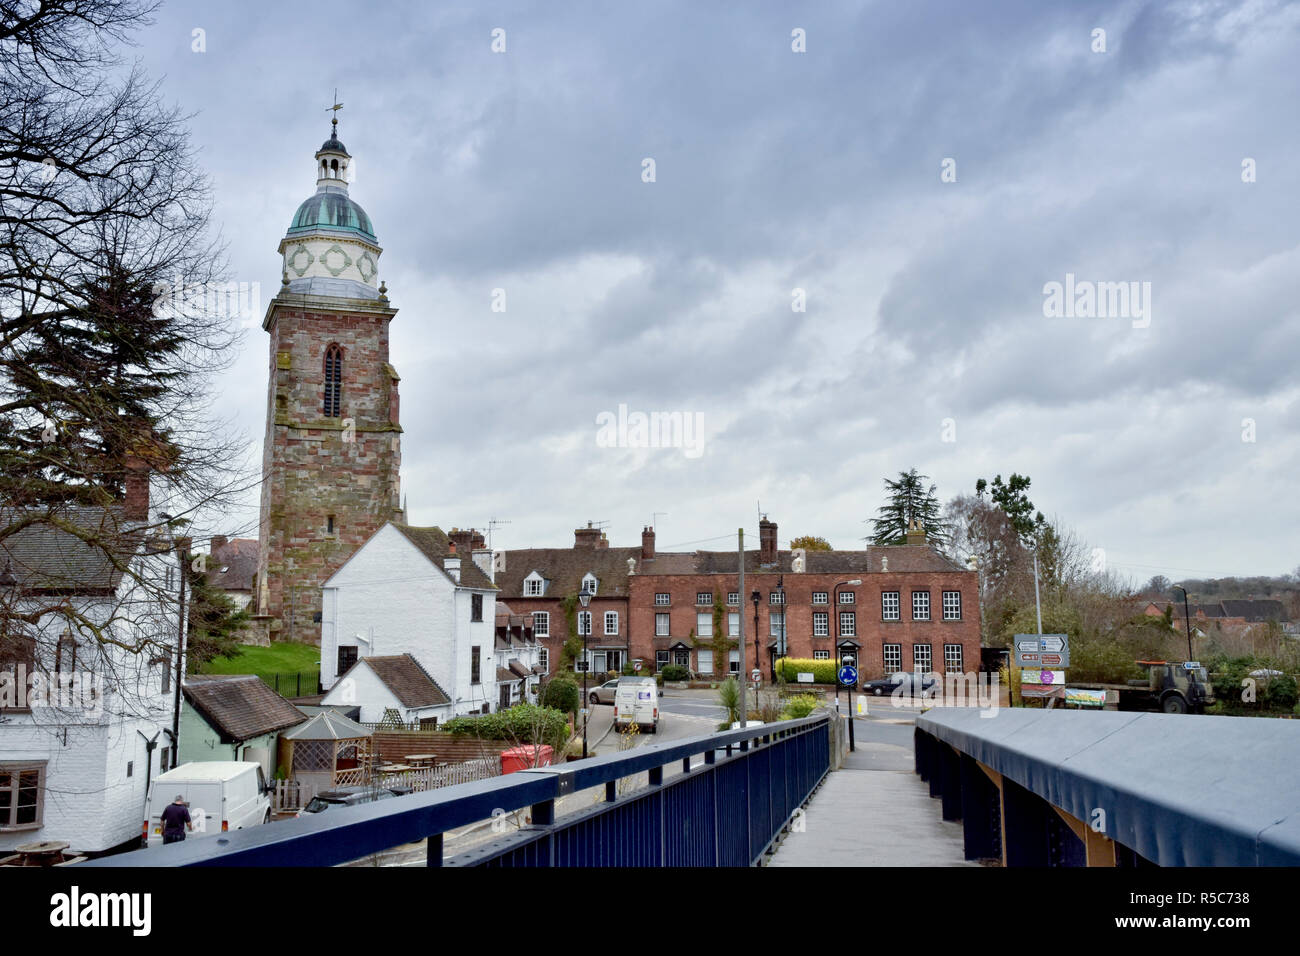 View of the historic small town of Upton-Upon-Severn and the Pepperpot tower, Worcestershire, UK in winter - Stock Image